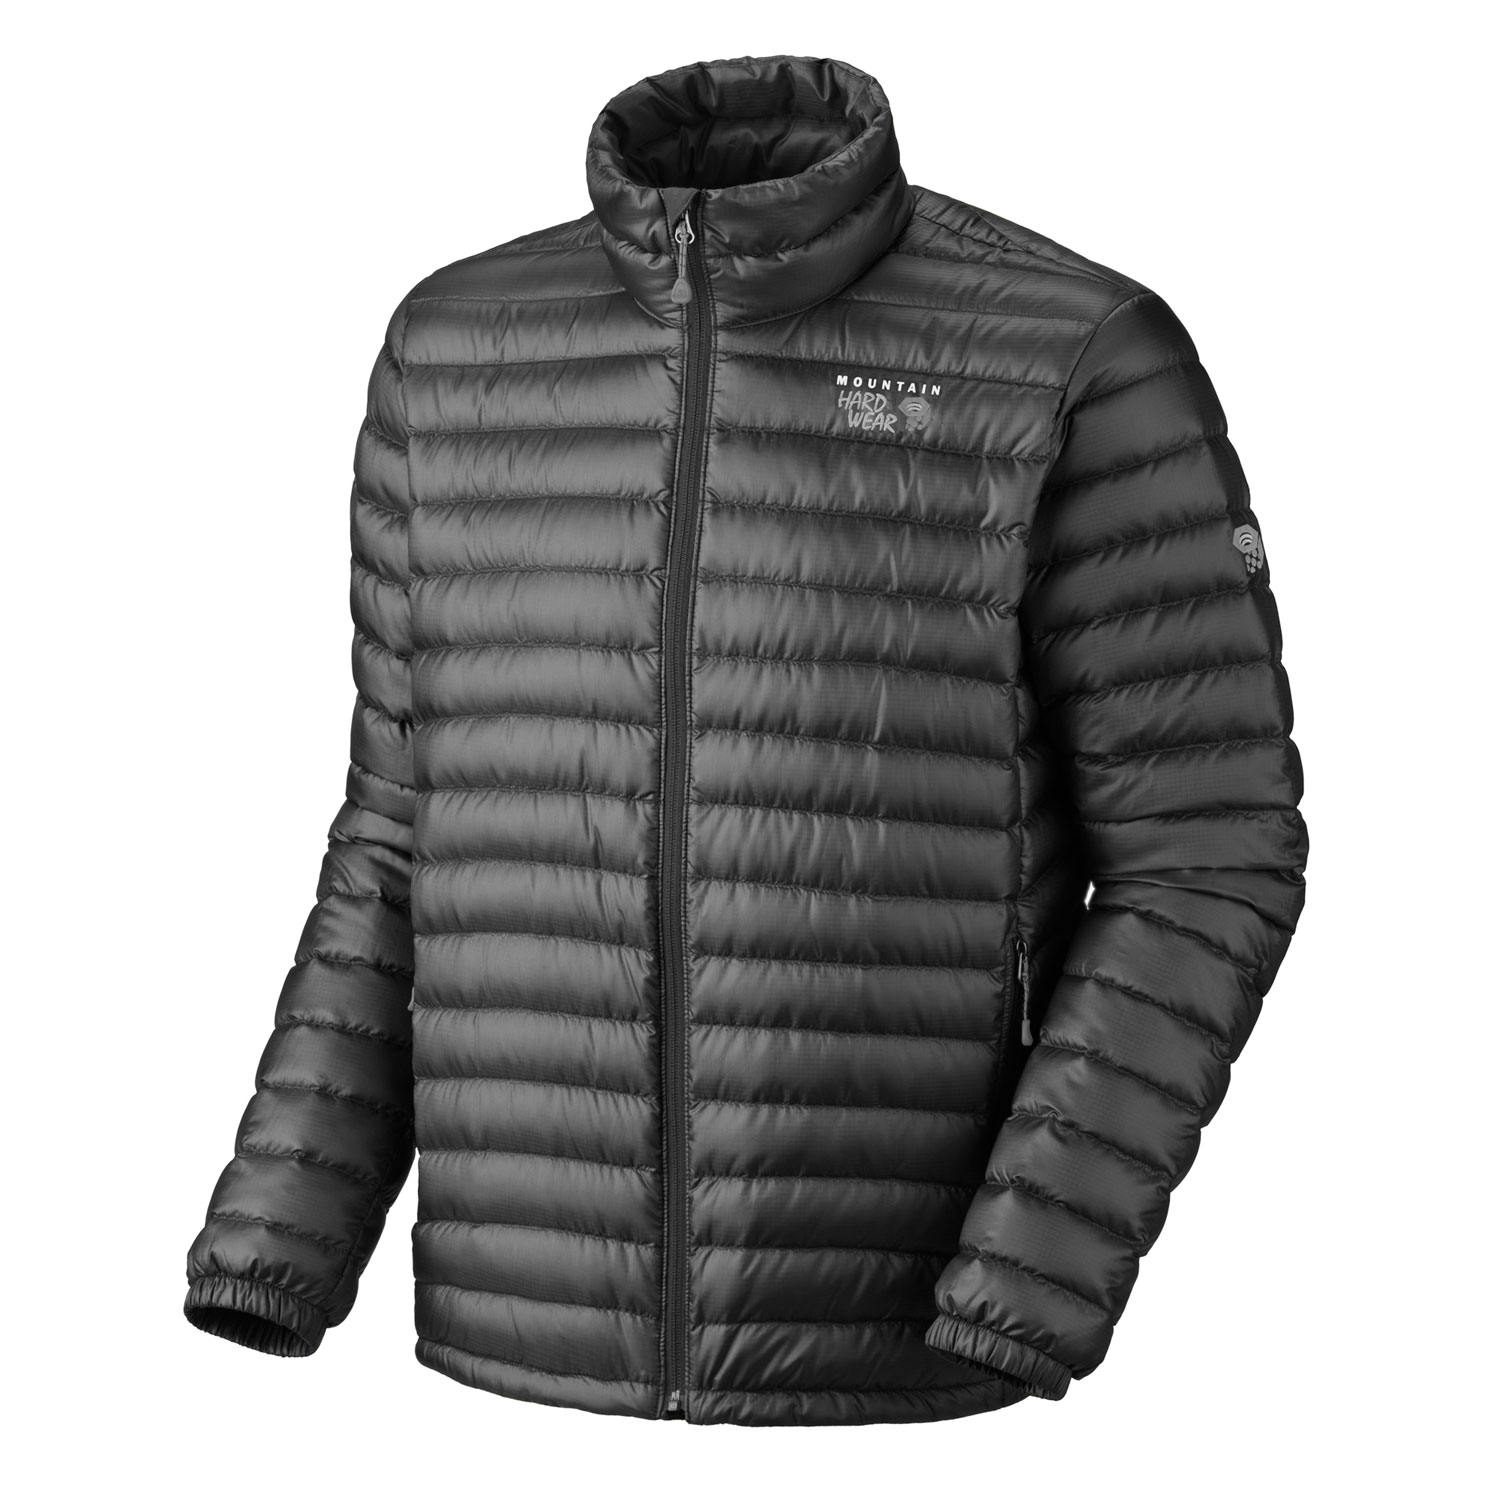 "Key Features of the Mountain Hardwear Nitrous Down Jacket: Avg. weight: 13oz; 355g Center back length: 28"" Fabric: body: Sensor Ripstop (100% polyester) insulation: 800-Fill Goose Down New design Quilted construction holds insulation in place Two front handwarmer pockets Dual hem drawcords seal in warmth Full elastic cuffs slide easily over layers to seal in warmth Micro-Chamois - lined chin guard prevents zipper chafe DWR finish repels water - $174.95"